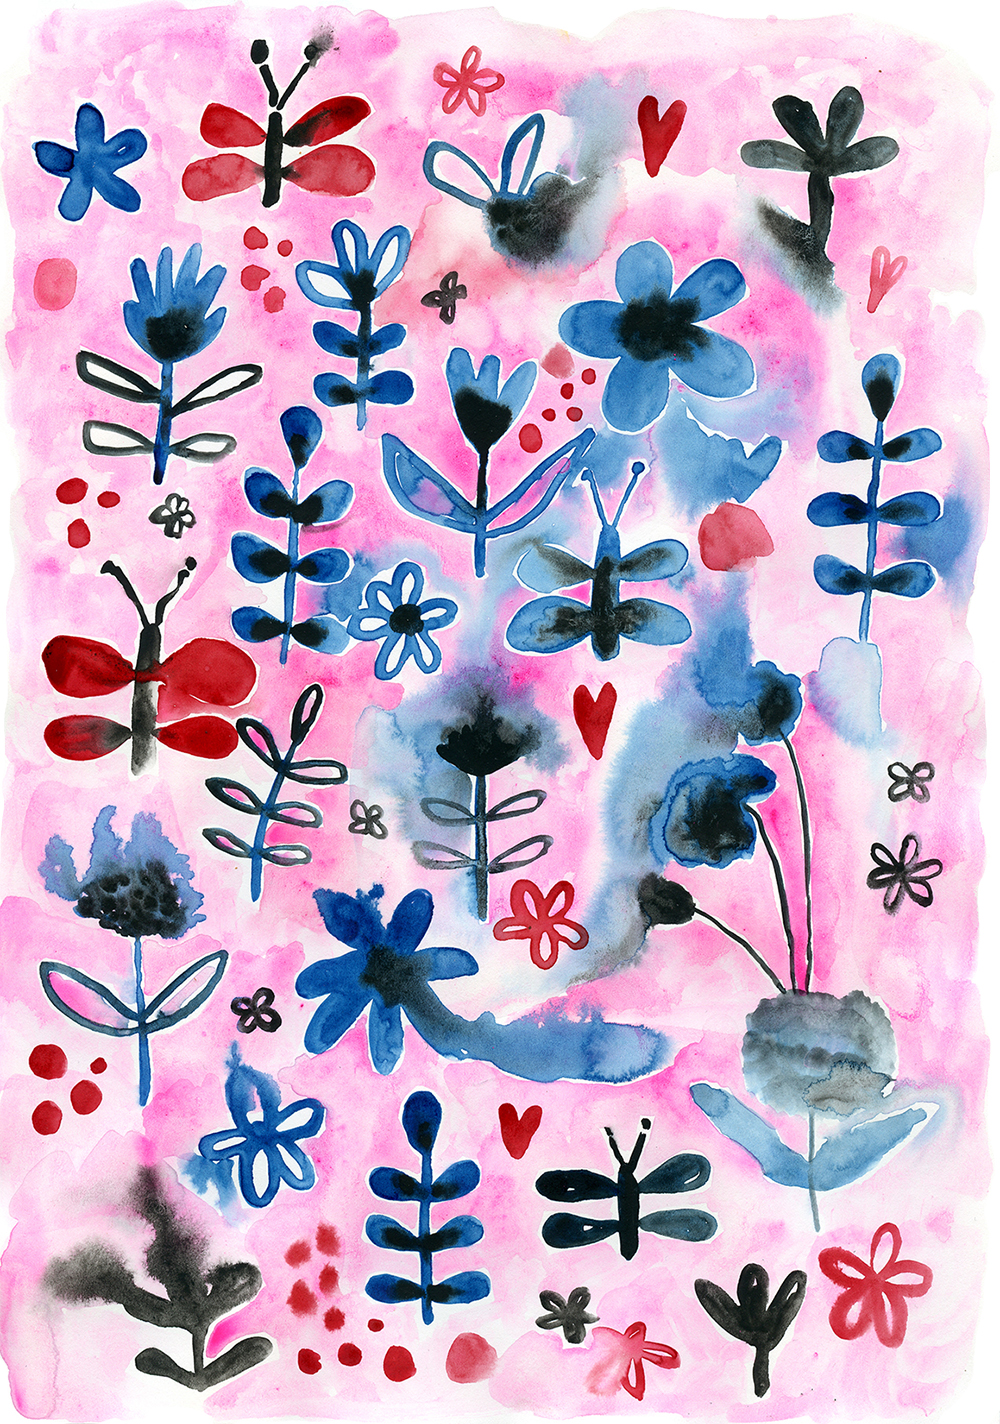 Marenthe Menagerie2018 Floral Pattern by Marenthe.jpg